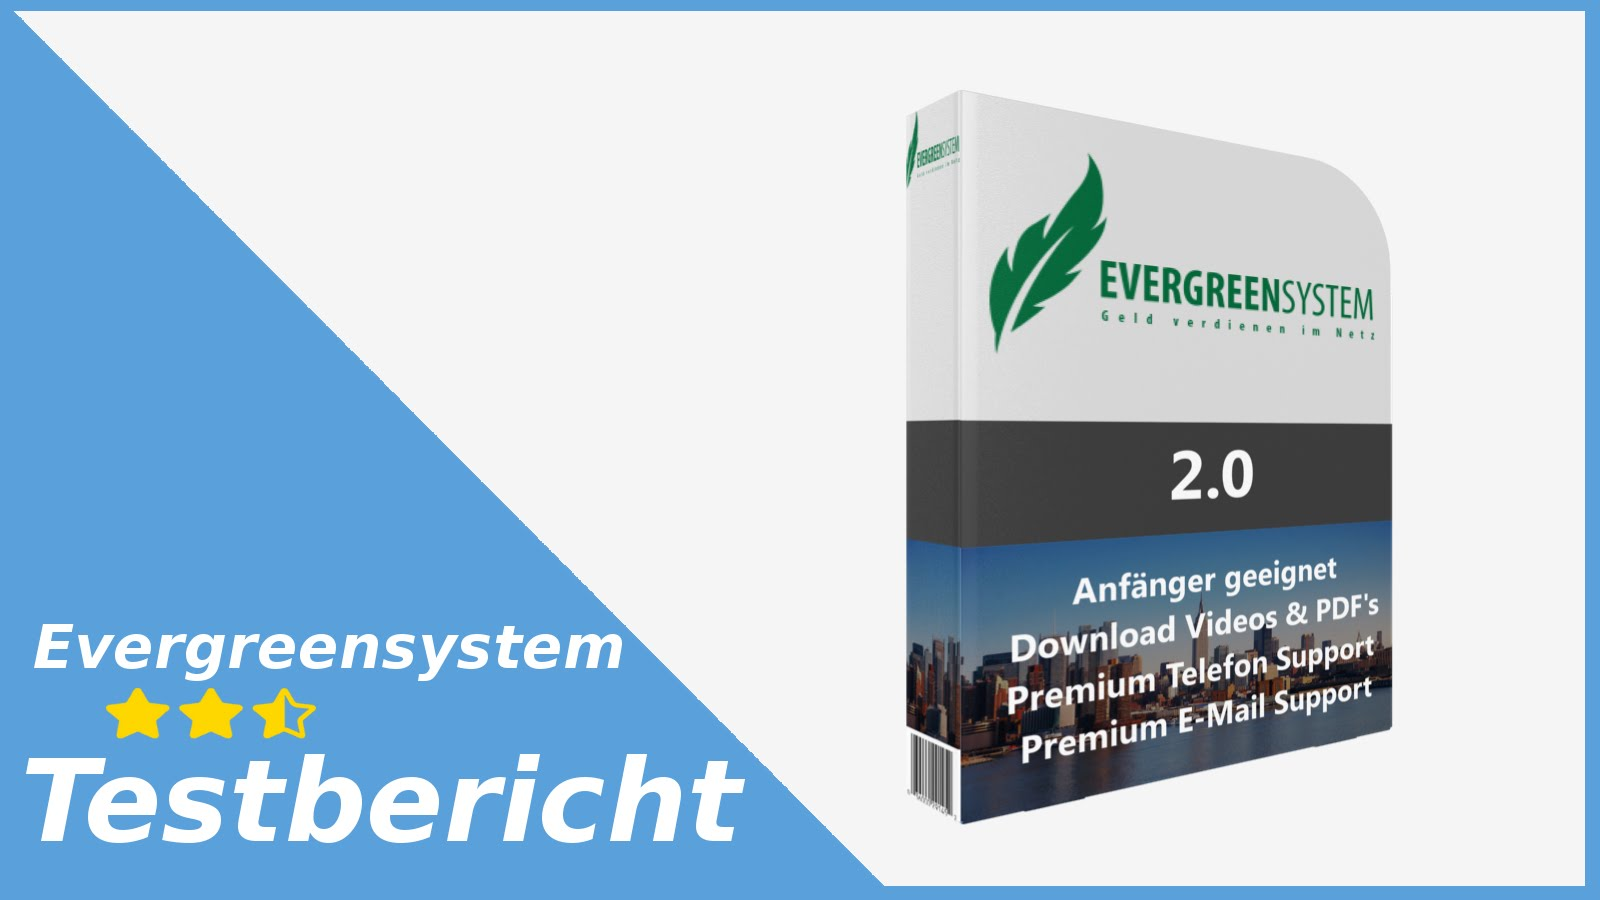 Evergreensystem